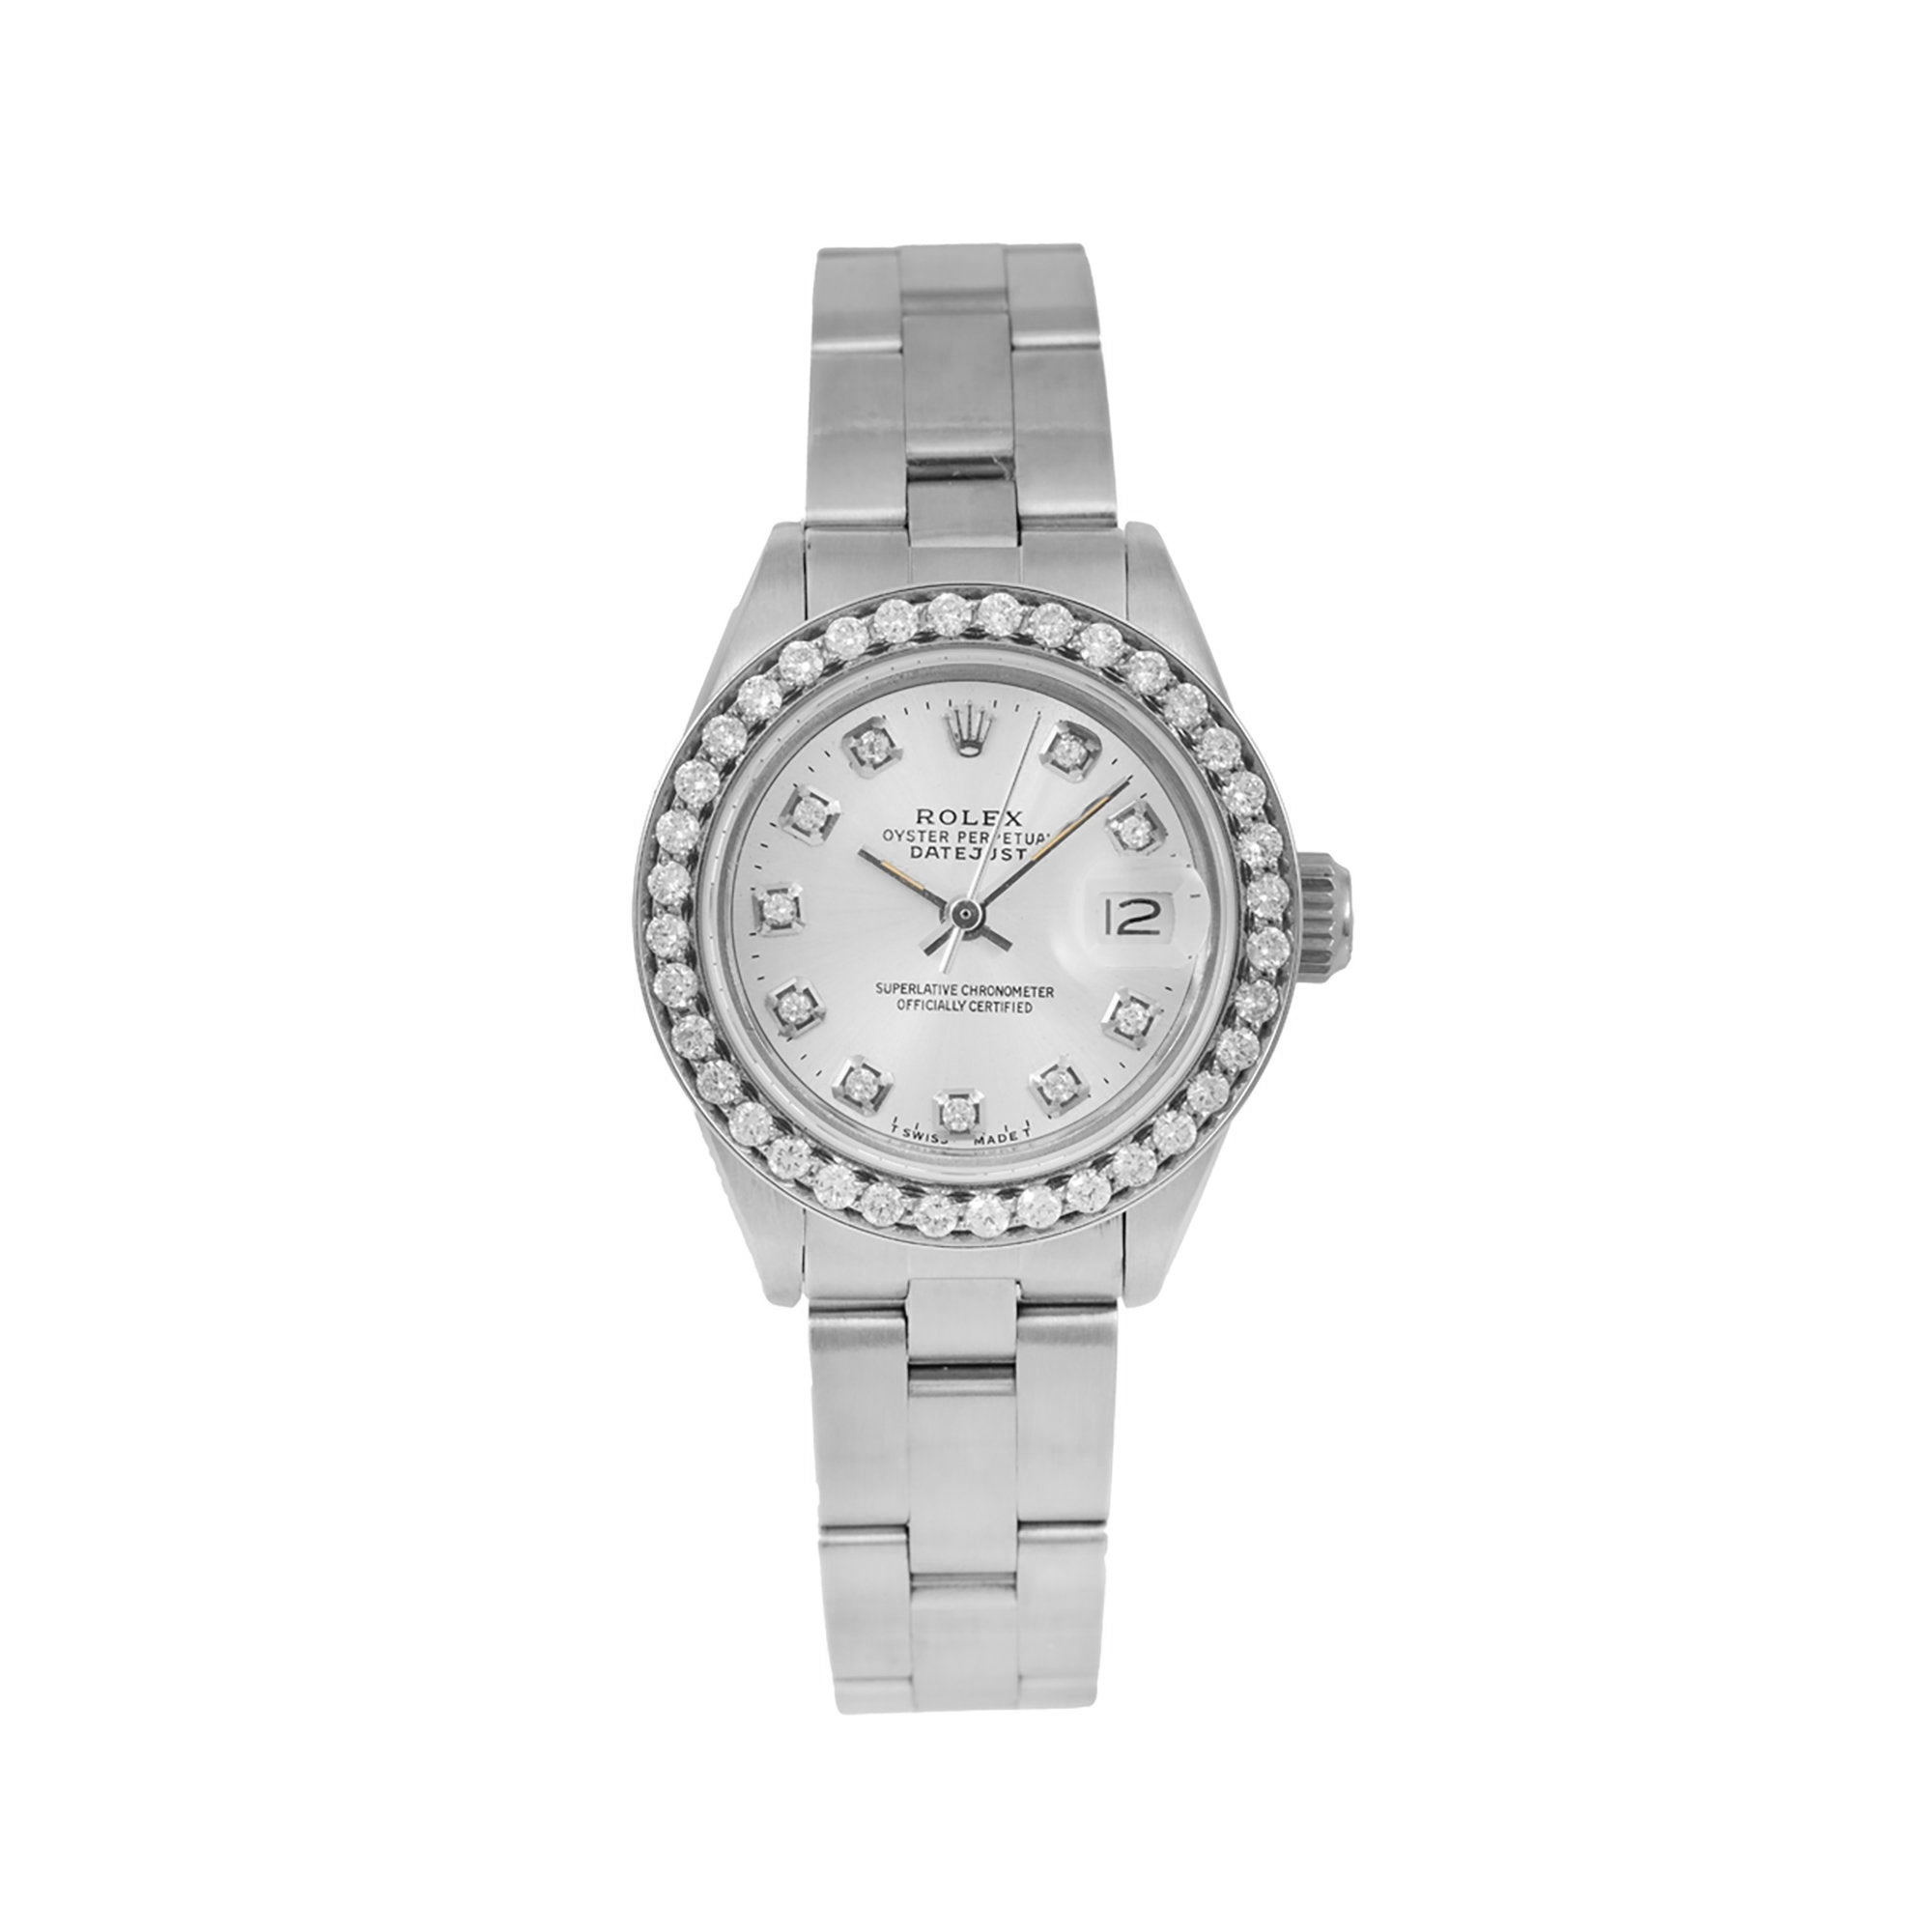 Rolex Datejust Ladies Diamond Watch, 6916 26mm, Silver Diamond Dial With 0.90 CT Diamonds